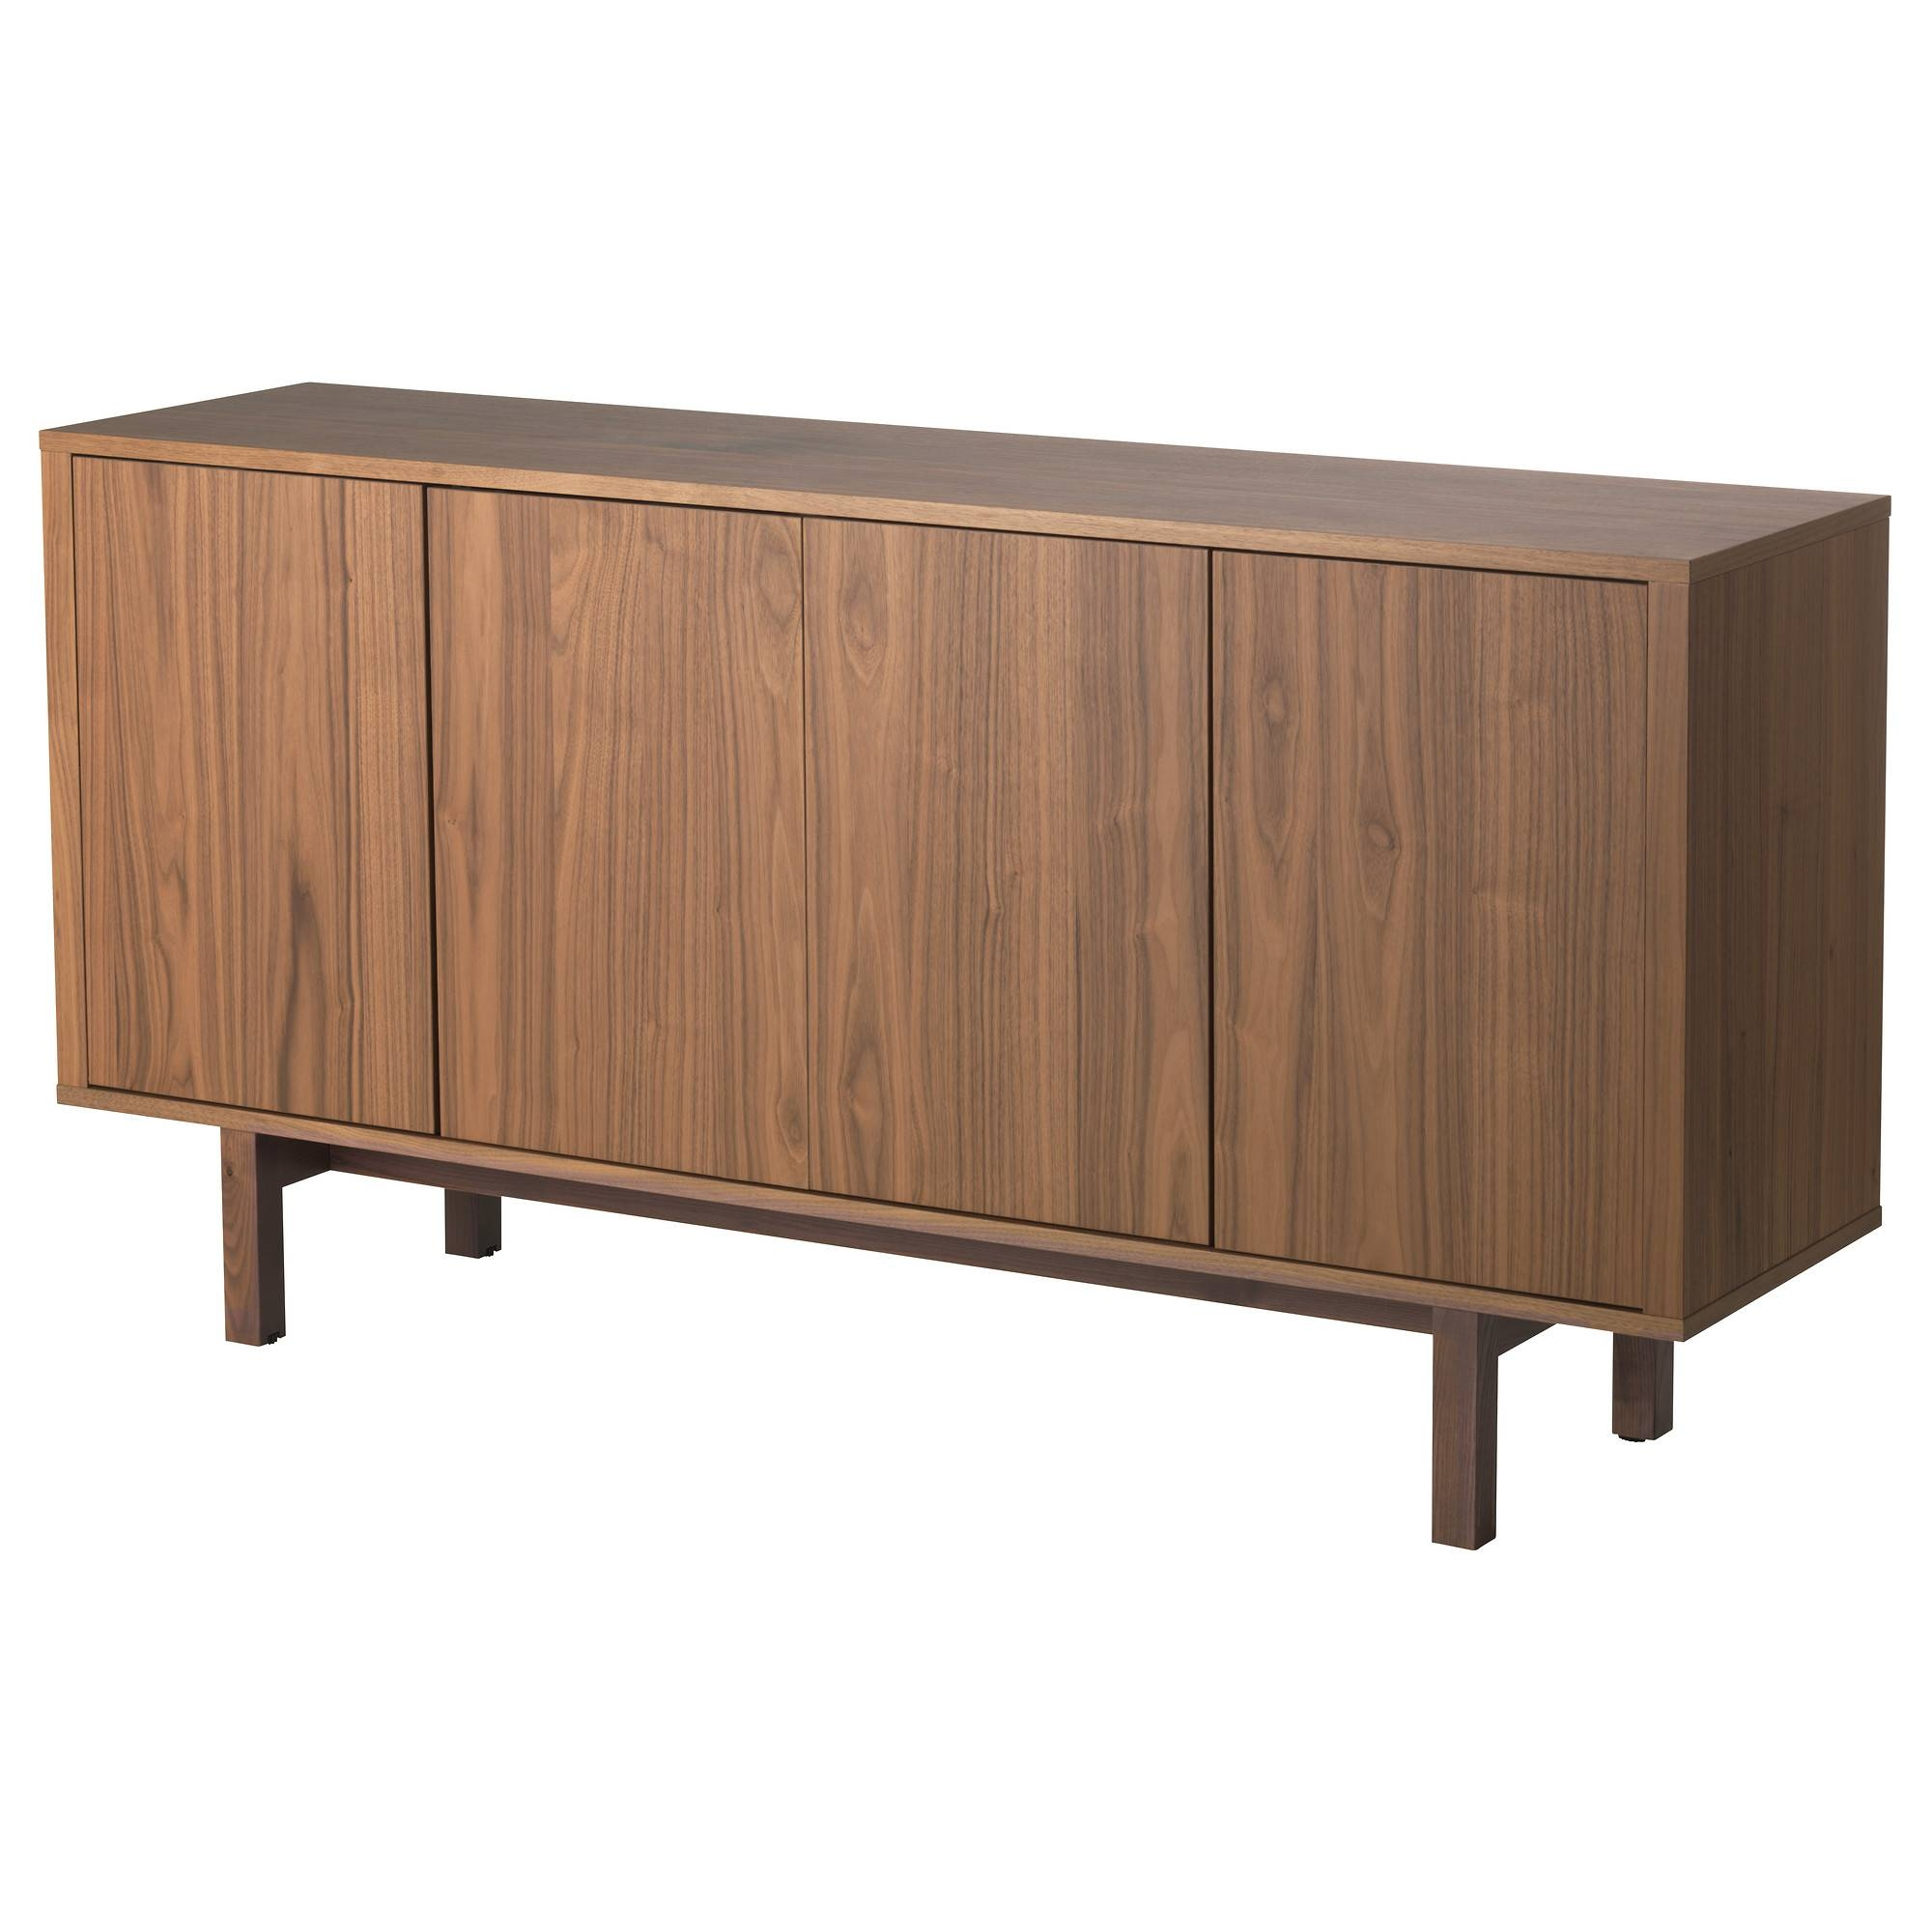 Buffet Tables & Sideboards – Ikea With Regard To Best And Newest Ikea Bjursta Sideboards (#2 of 15)